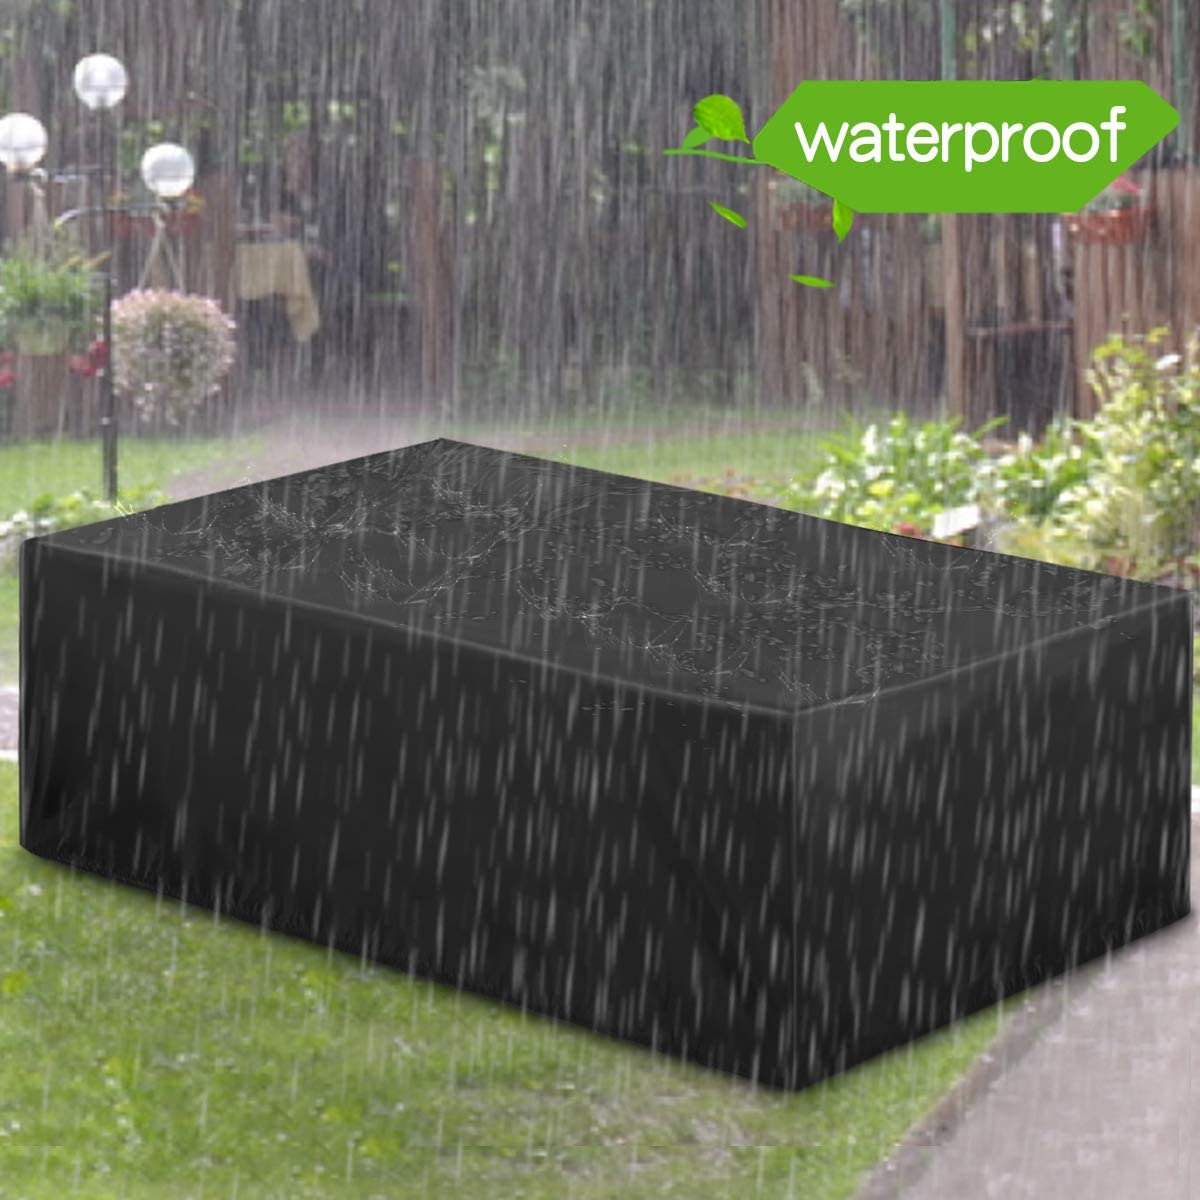 Essort Patio Furniture Covers, Extra Large Outdoor Furniture Set Covers Waterproof, Rain Snow Dust Wind-Proof, Anti-UV, Fits for 8 Seats (78.7x63x27'')